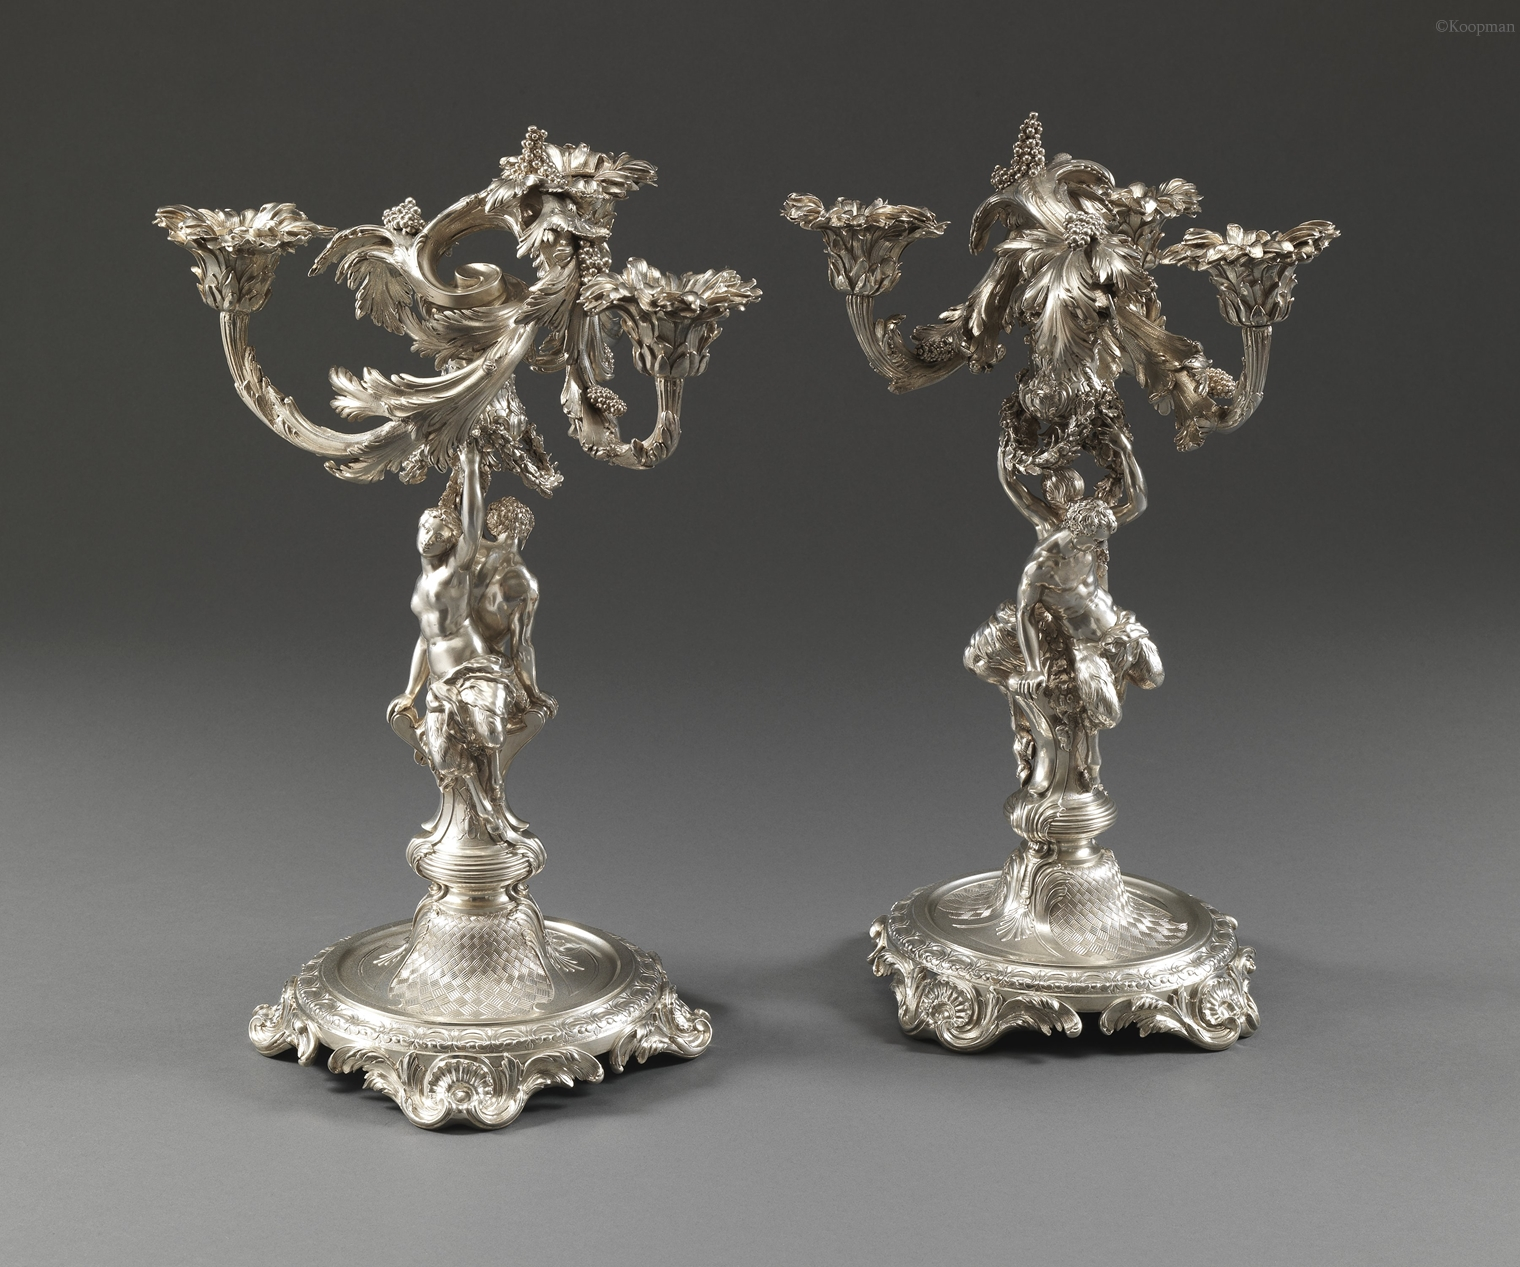 THE 20TH EARL OF KILDARE:  A PAIR OF GEORGE II CANDELABRA